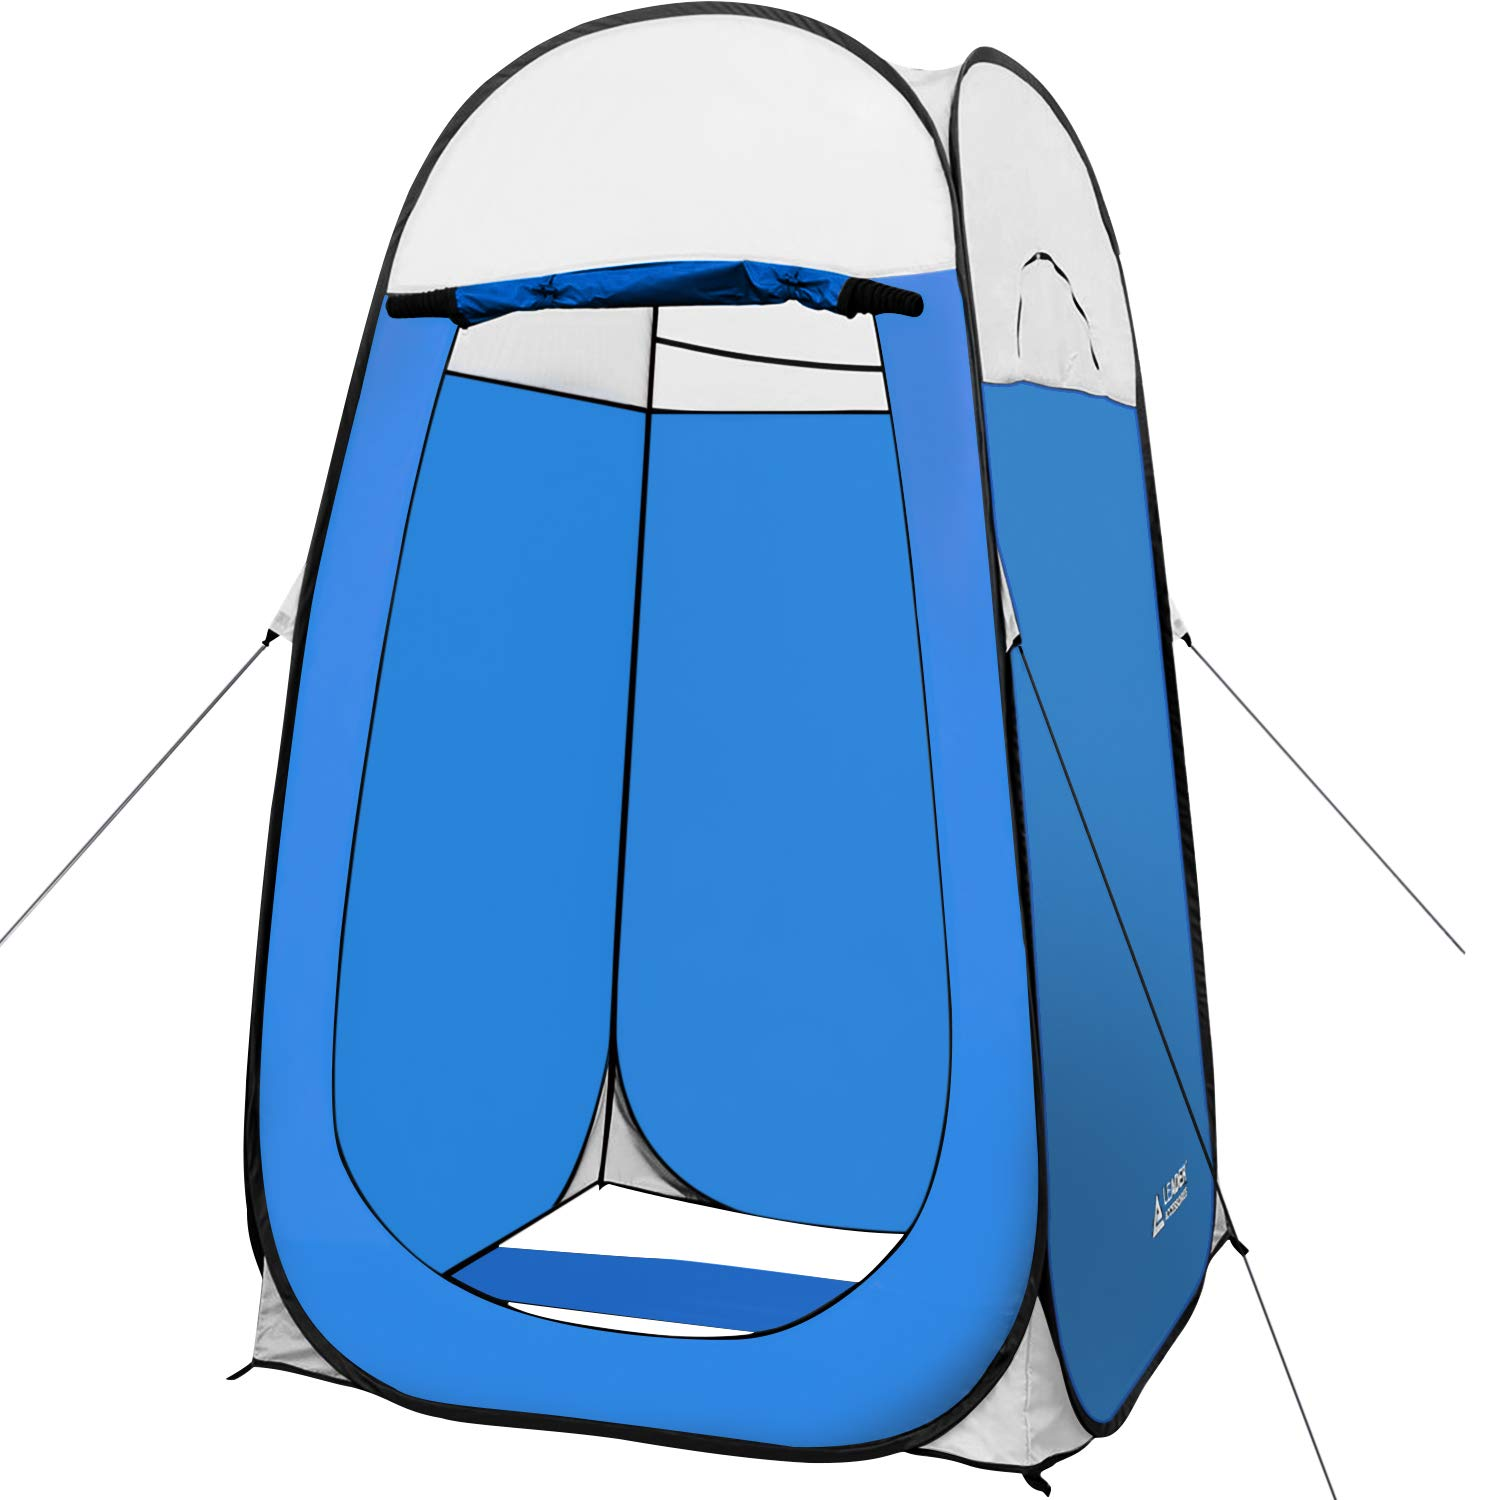 Leader Accessories Pop Up Shower Tent Dressing Changing Tent Pod Toilet Tent 4' x 4' x 78''(H) Big Size (Blue) by Leader Accessories